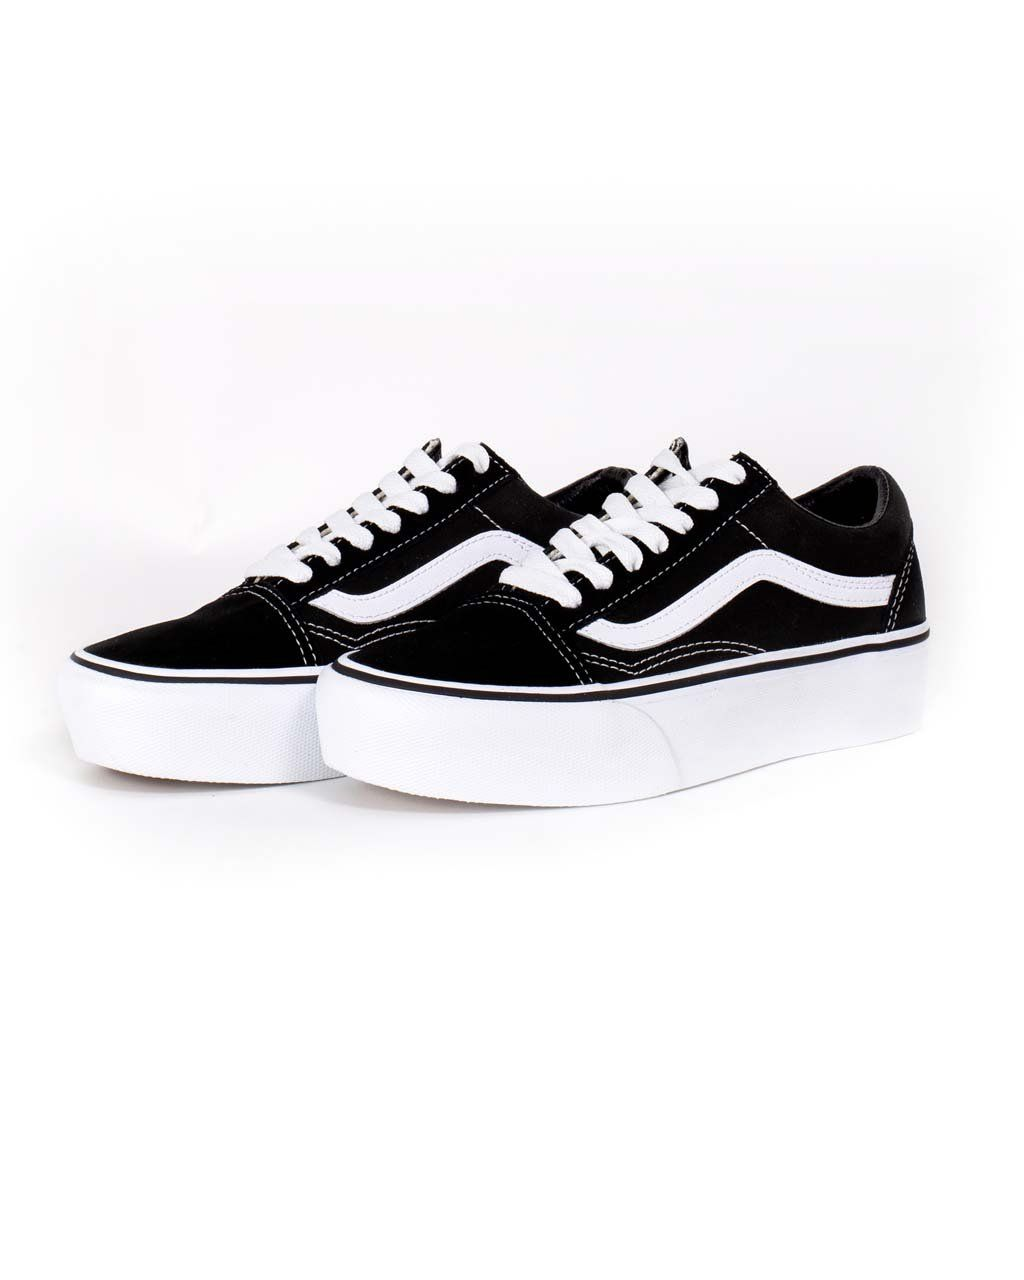 fbaf3f20b71fc2 old skool platform - black by vans - shoes - ban.do